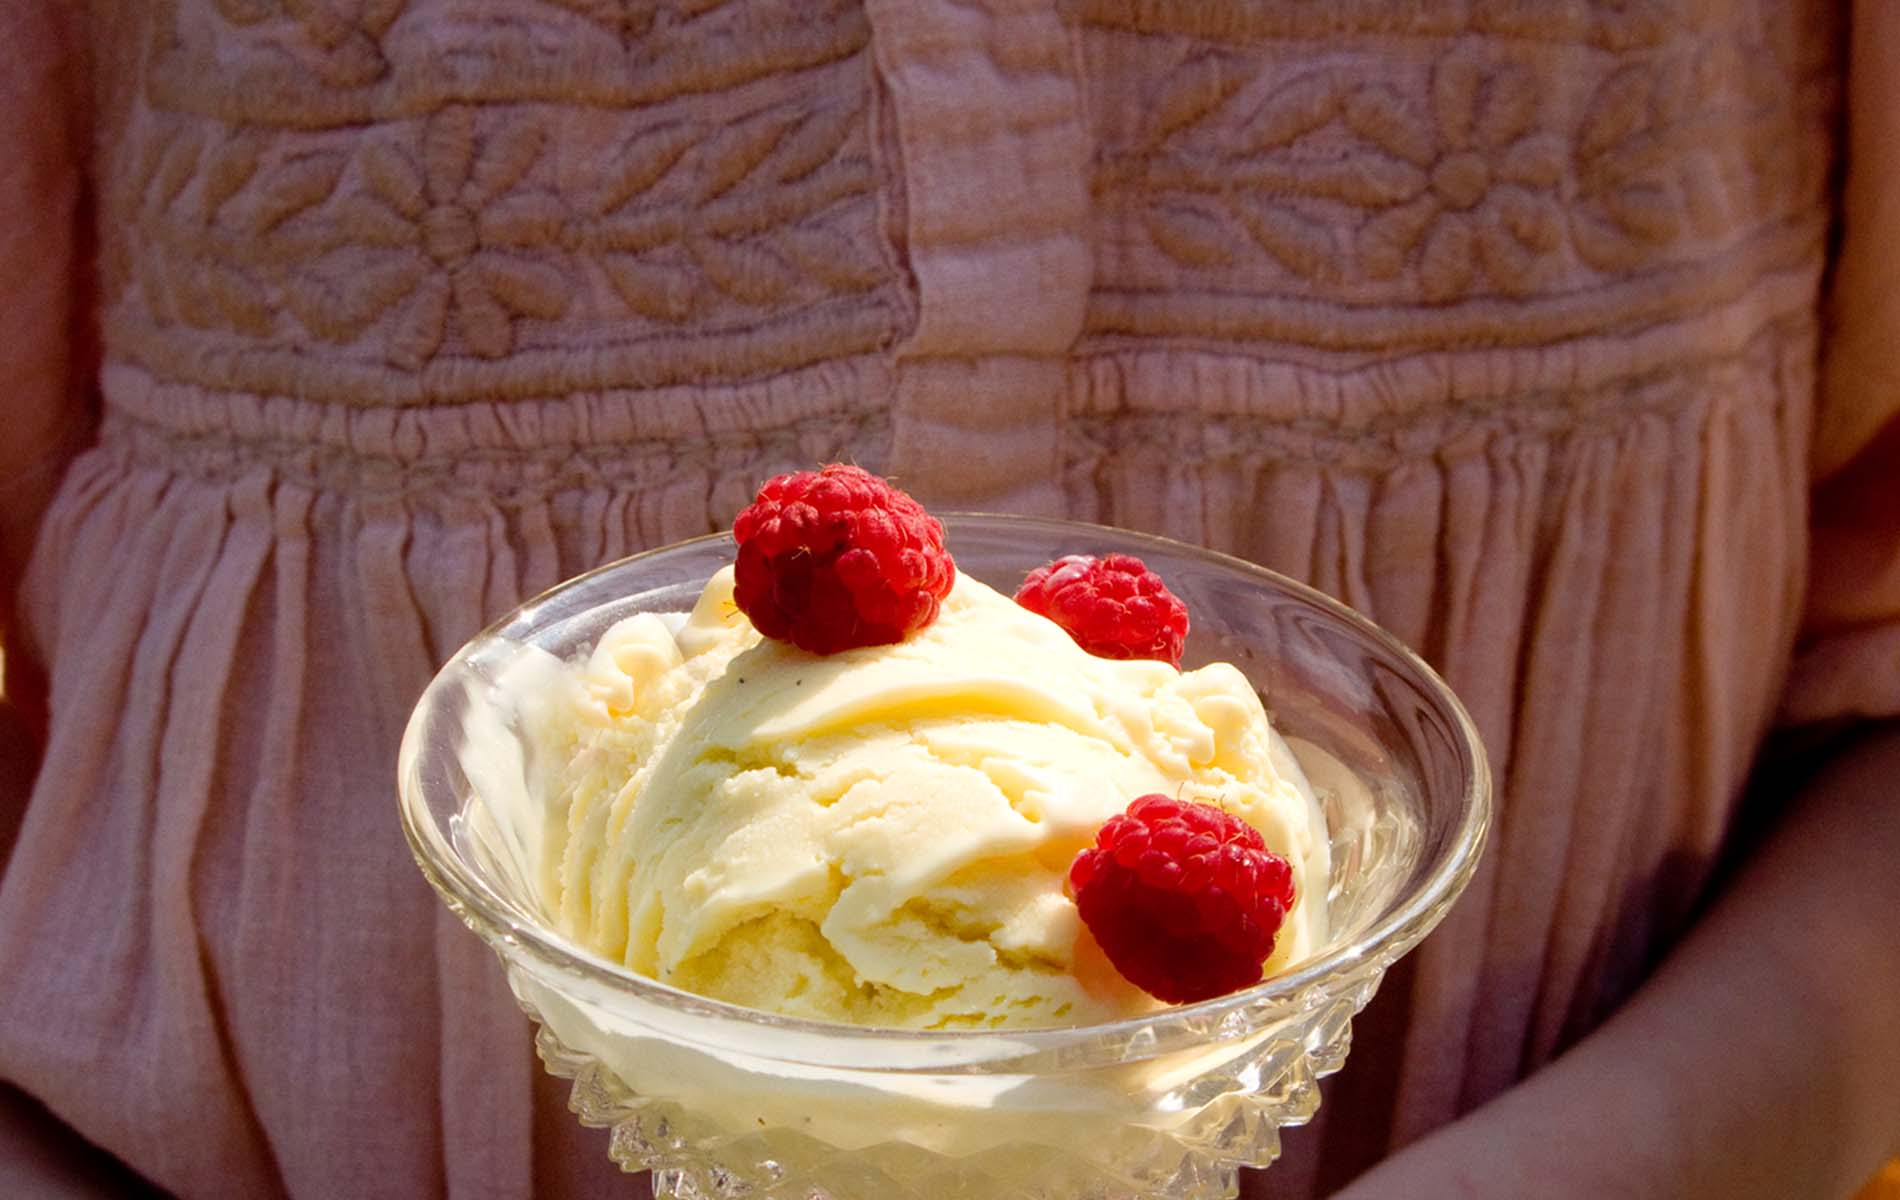 Lemon Ice Cream Recipe – Cheesecake Style